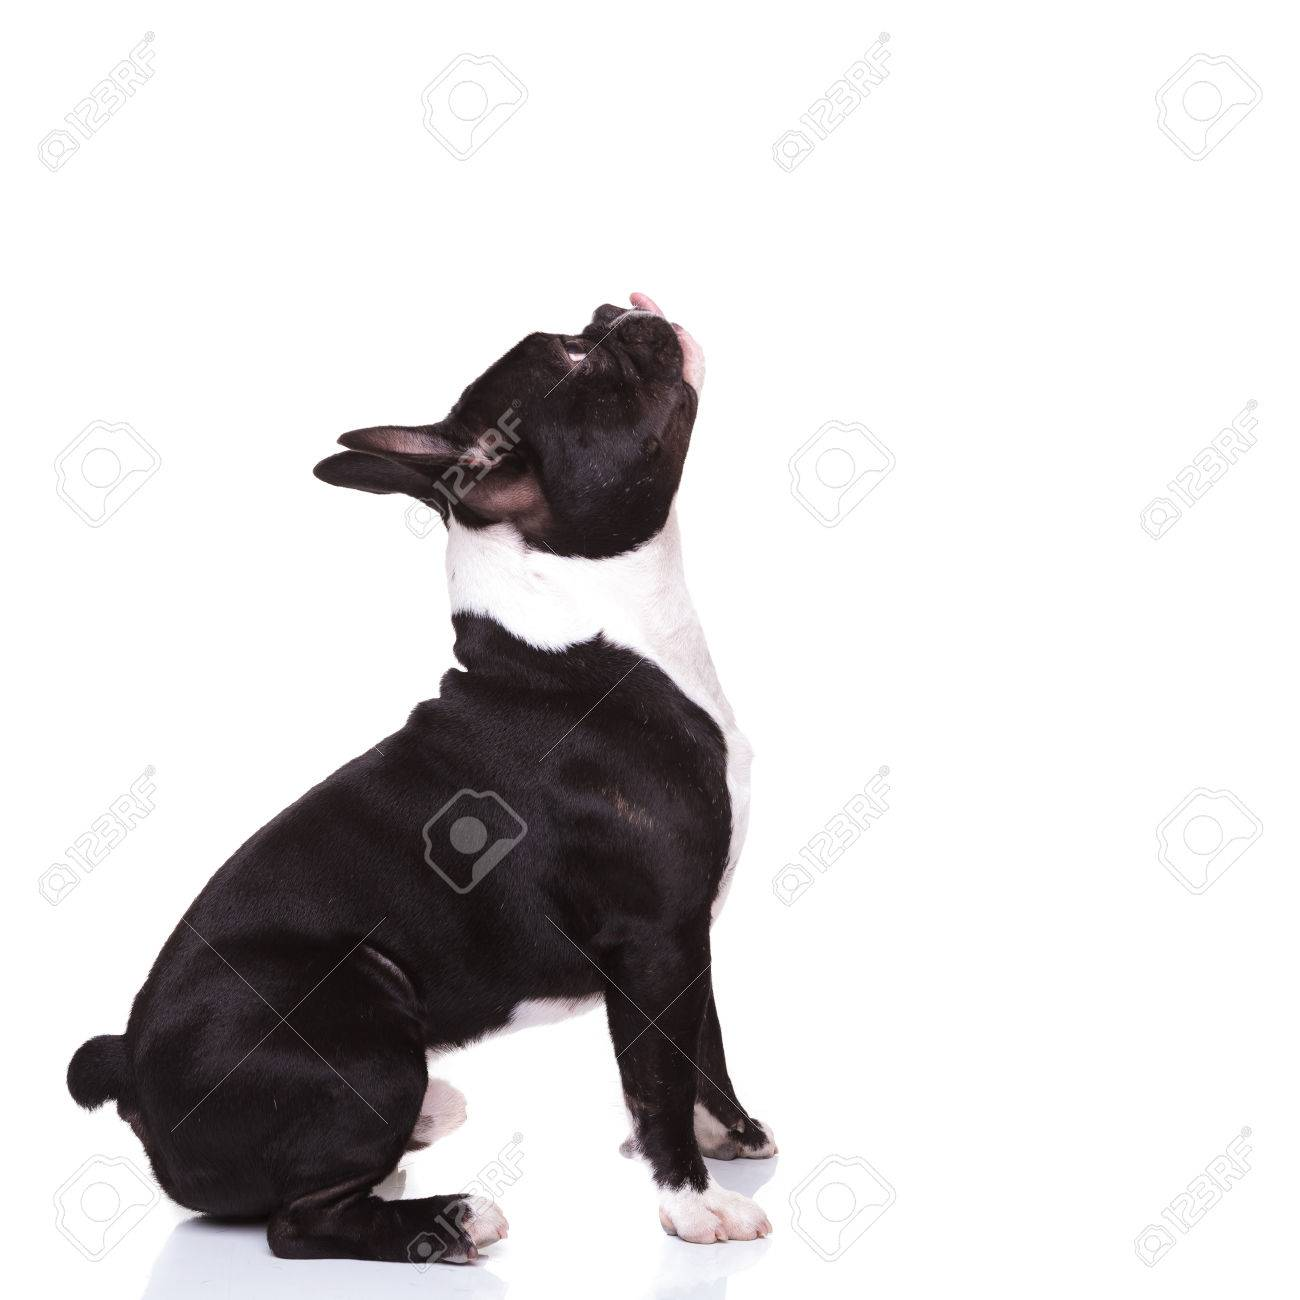 side view of a french bulldog with tongue out looking up to something ready to bite, isolated on white background - 47016704